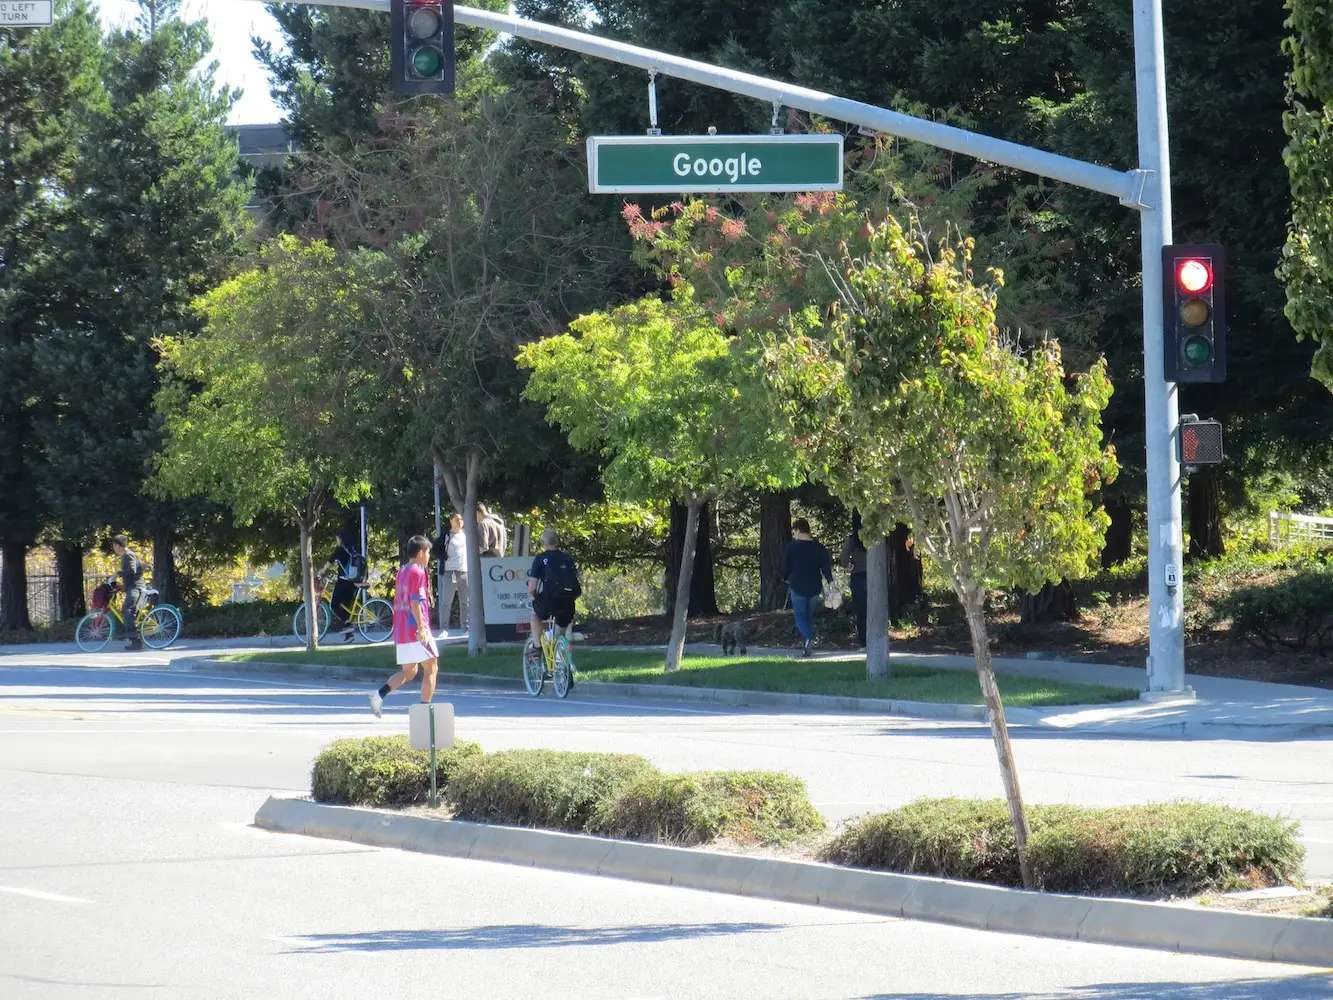 The Google campus is located in a quiet town called Mountain View. Trees are big. Google signs are low to the ground, so the campus almost feels hidden.